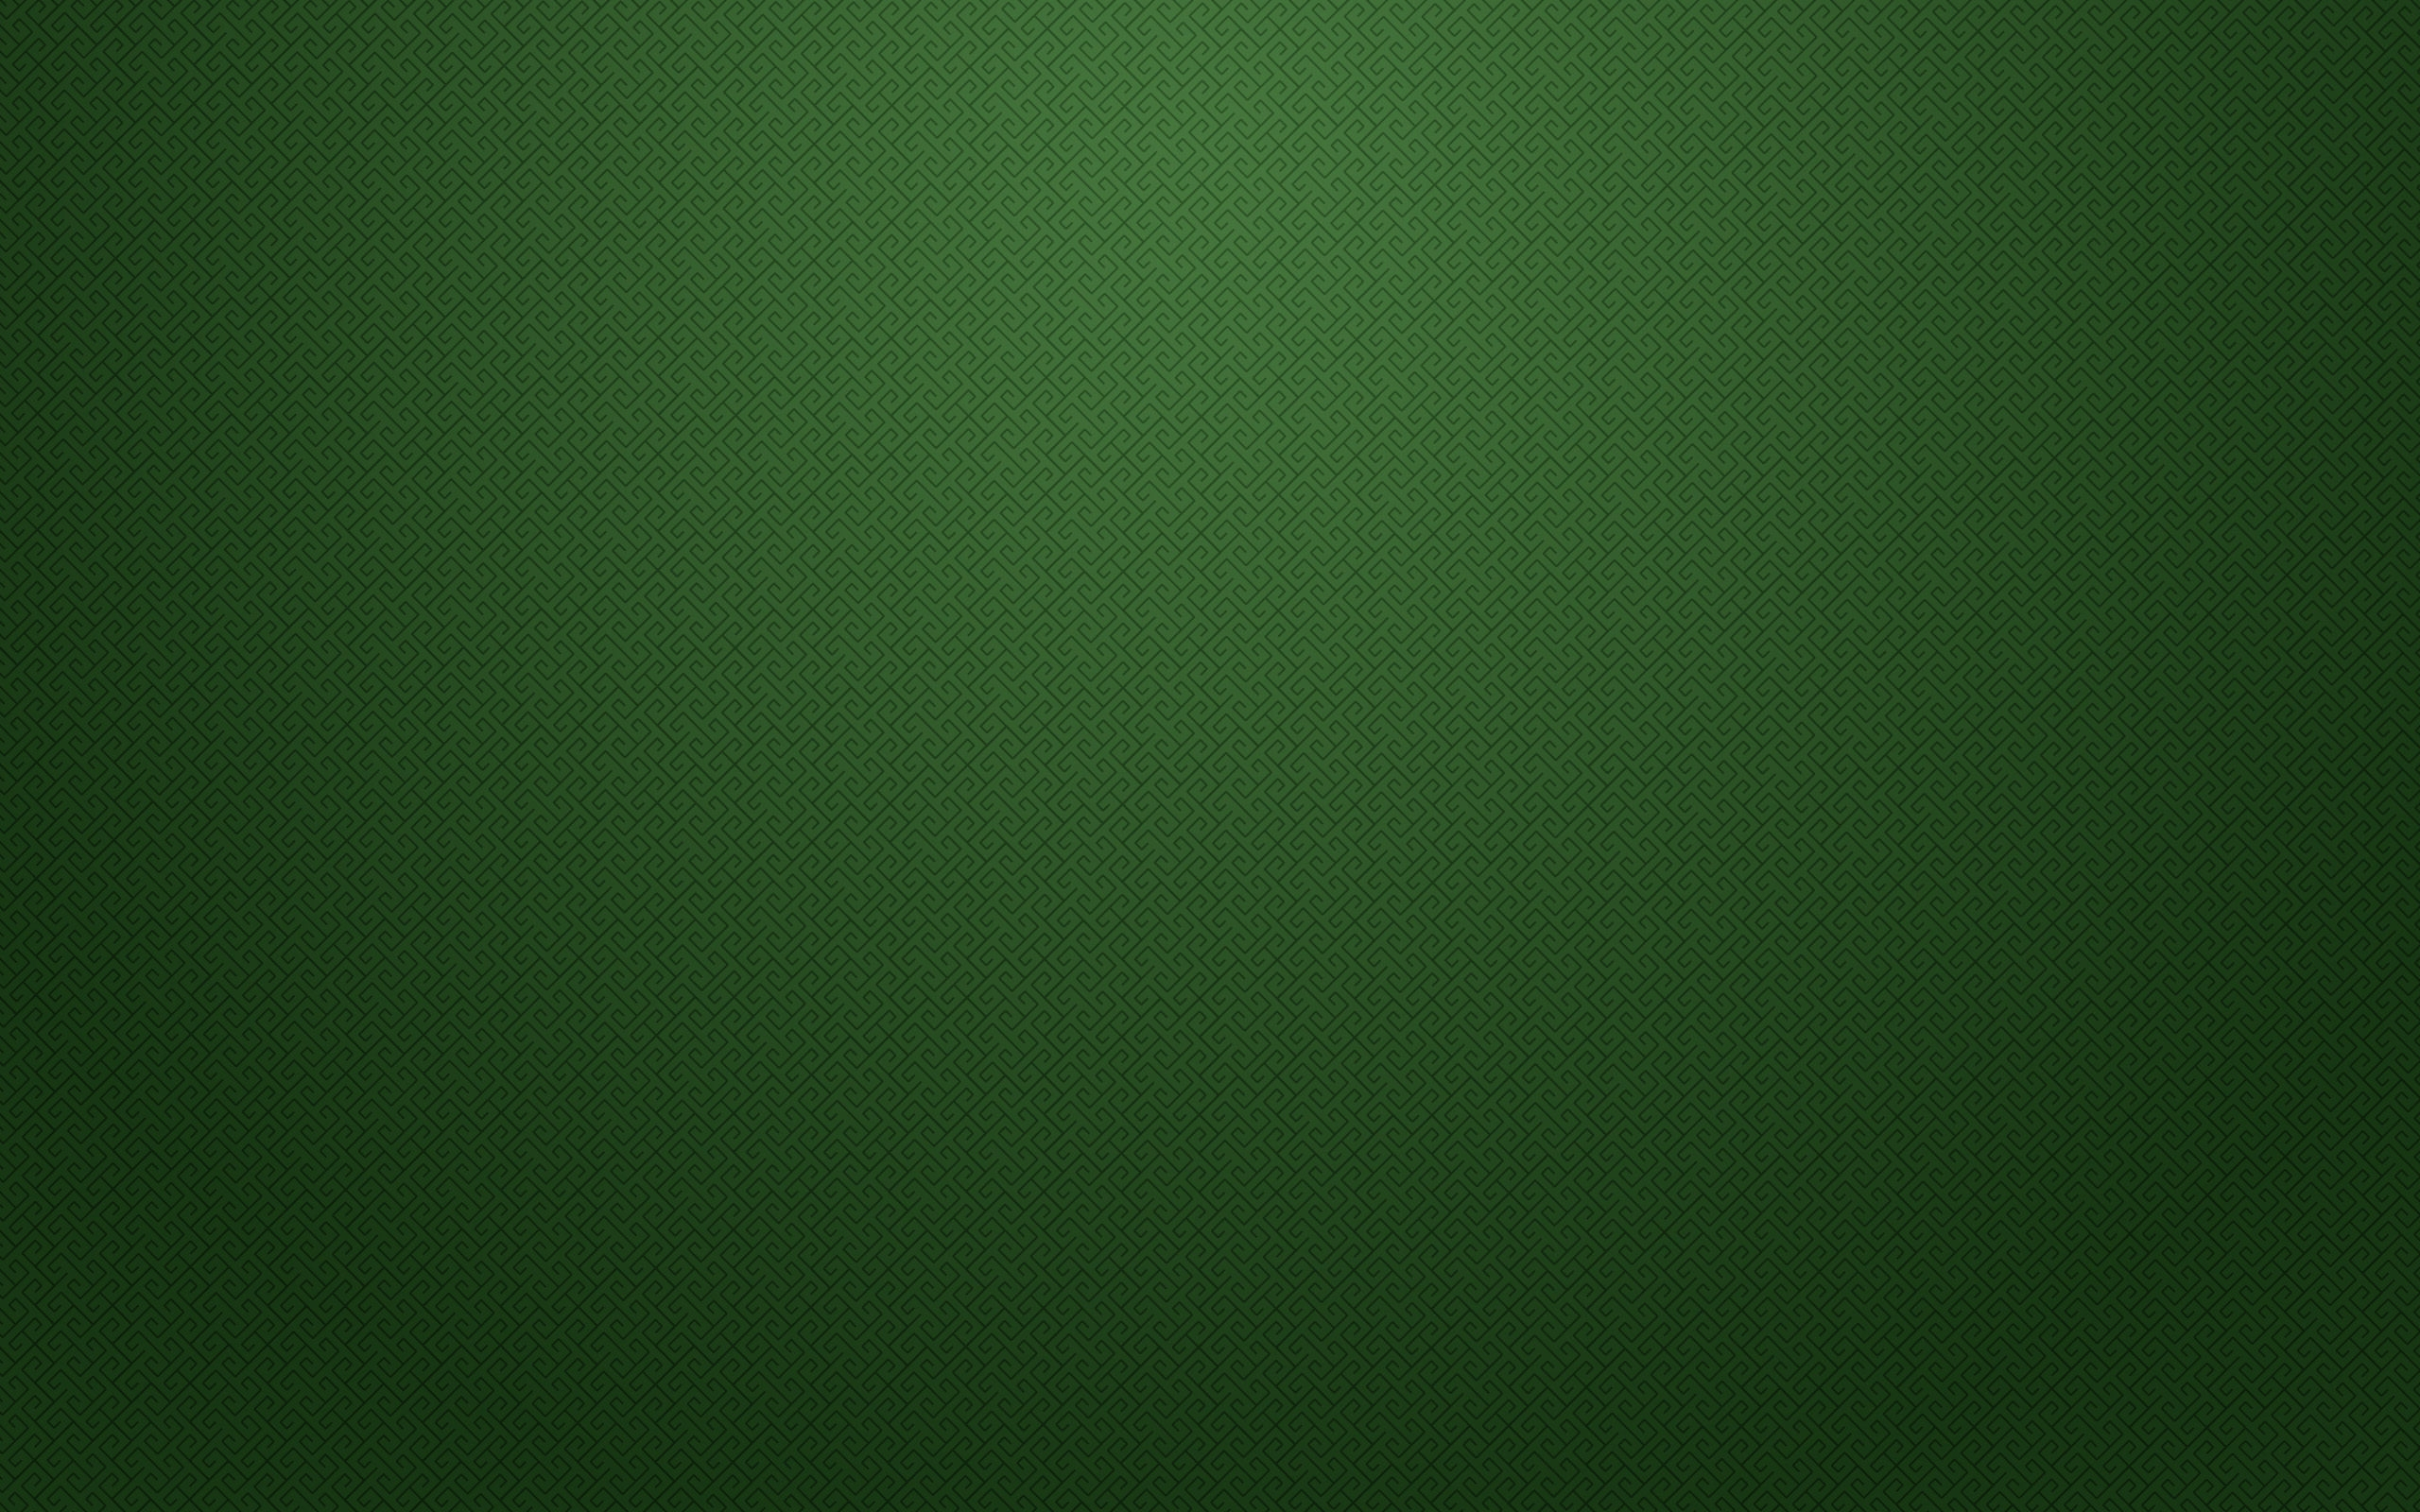 Green Background Design Wallpaper 15+ Green Grung...